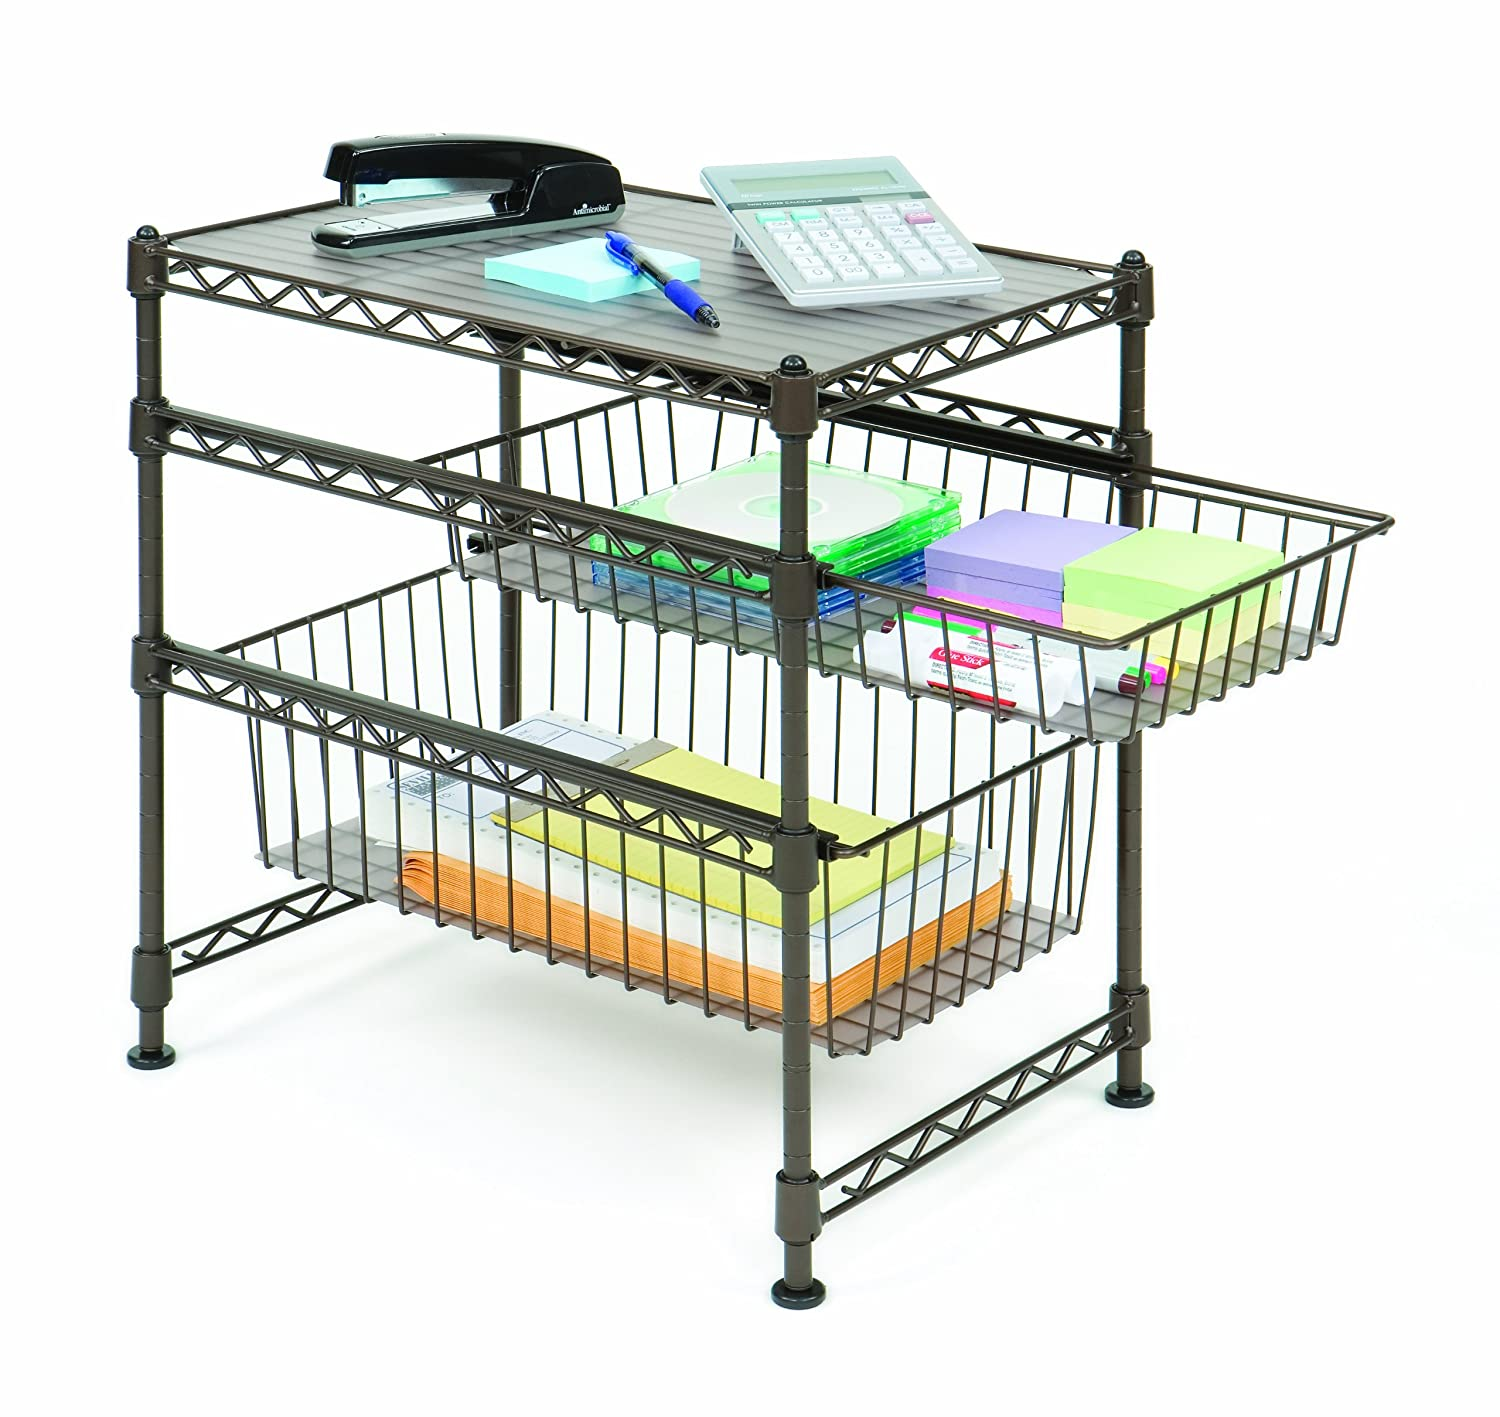 utility organizer storage shelf hold tier rack steel wire sliding basket kitchen ebay. Black Bedroom Furniture Sets. Home Design Ideas